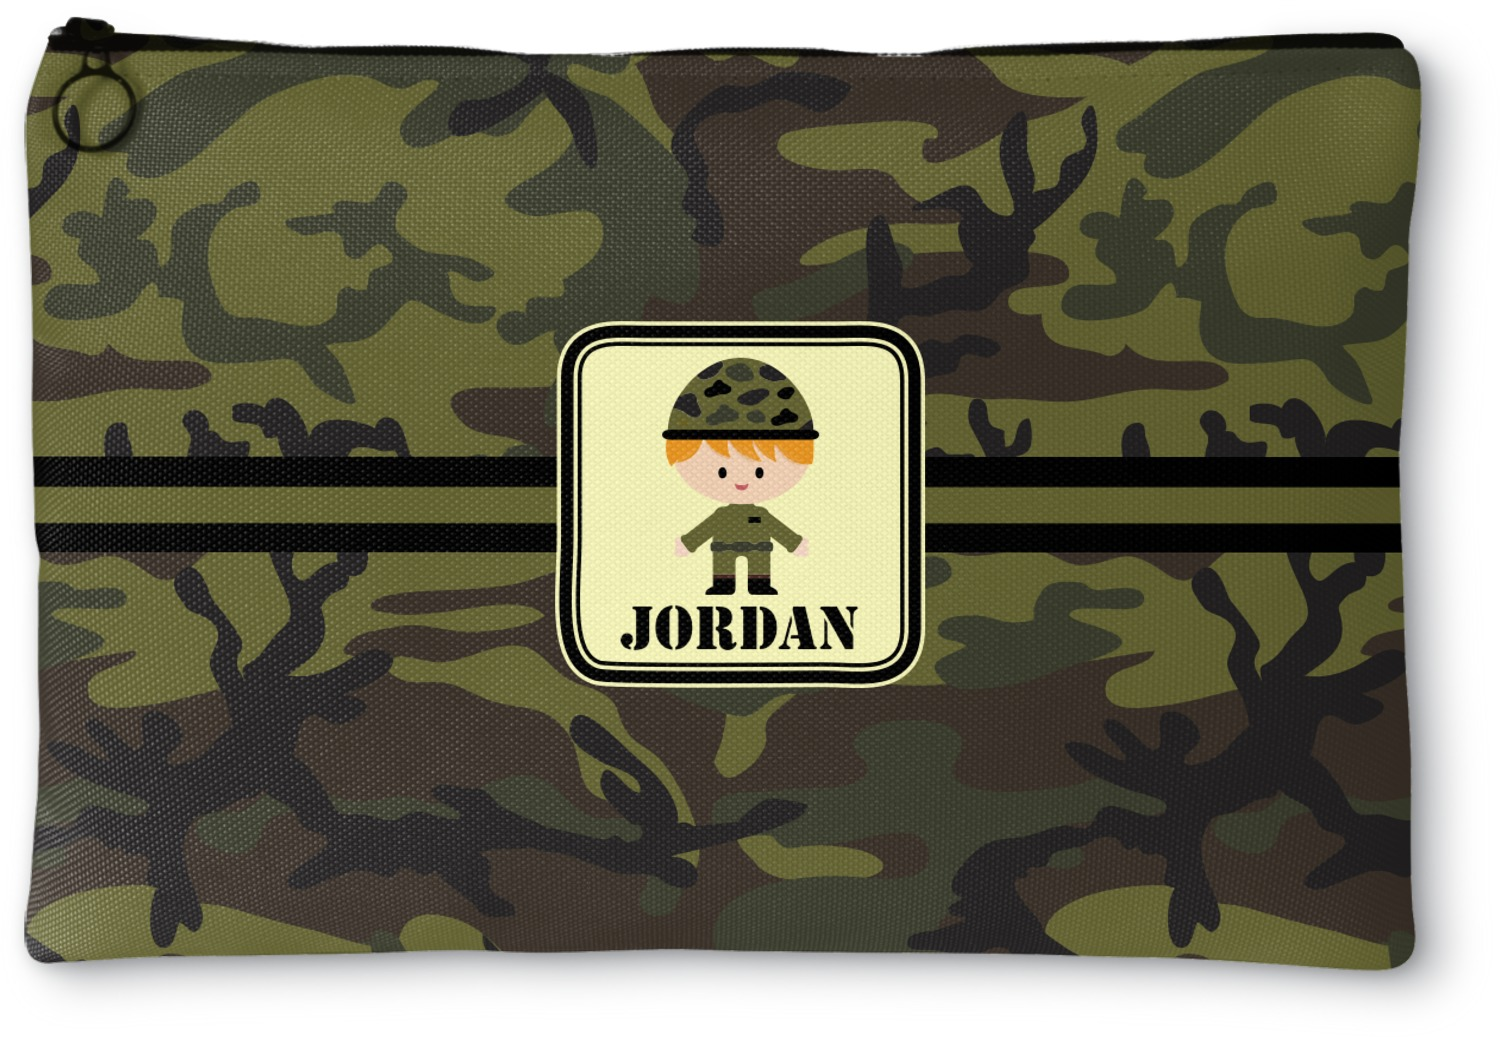 91980a65097f Green Camo Zipper Pouch (Personalized) - YouCustomizeIt